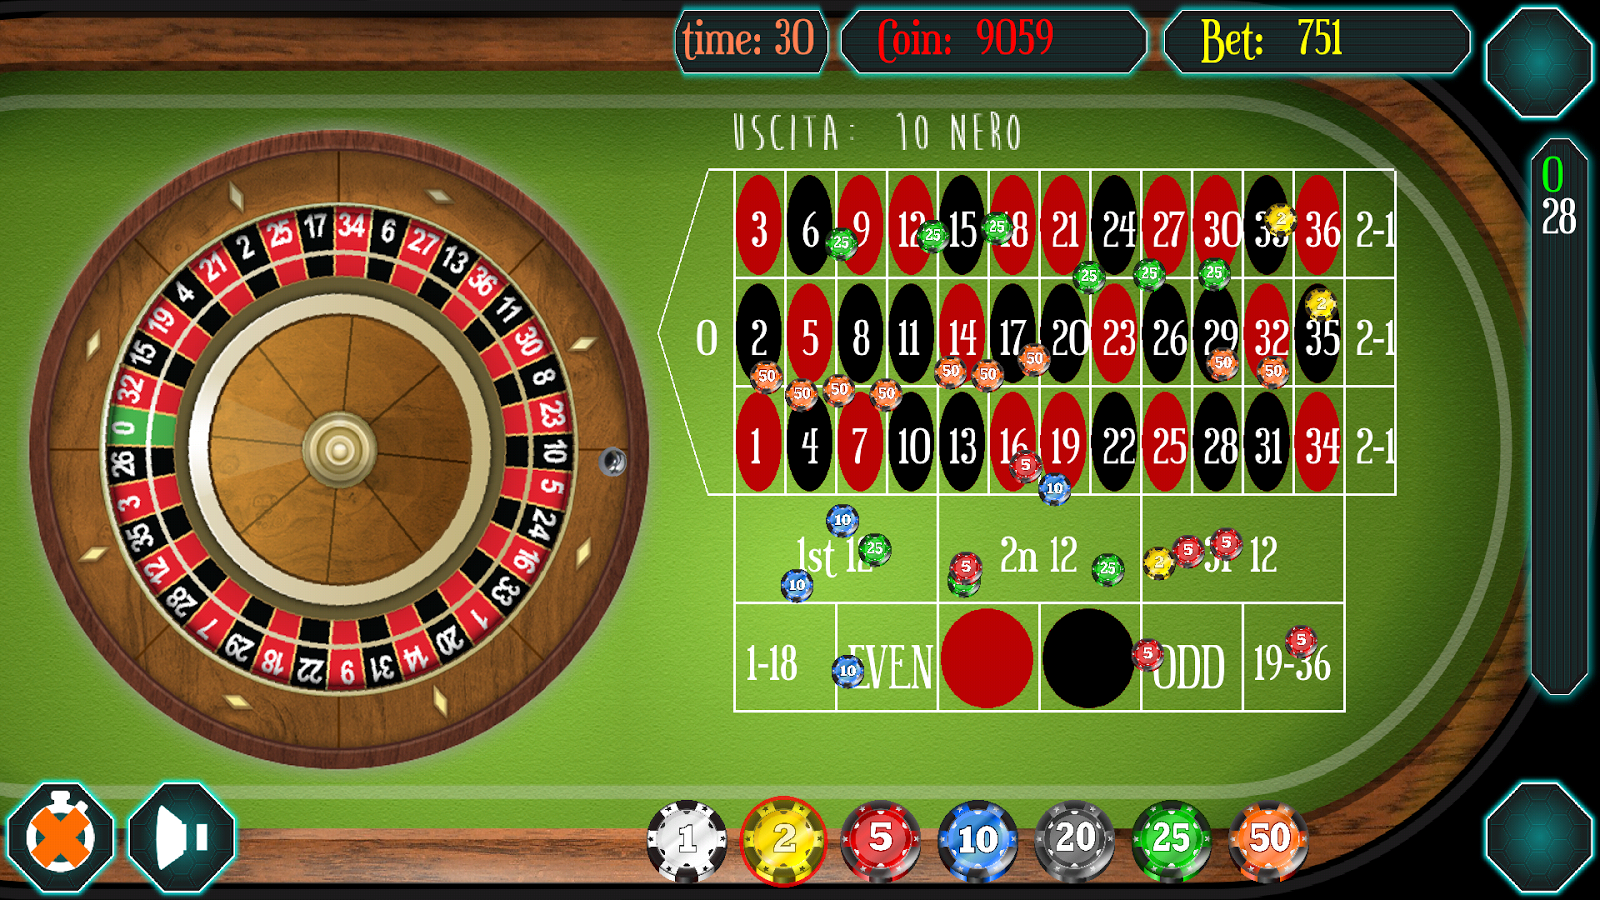 Comprehensible instructions for learning to play roulette